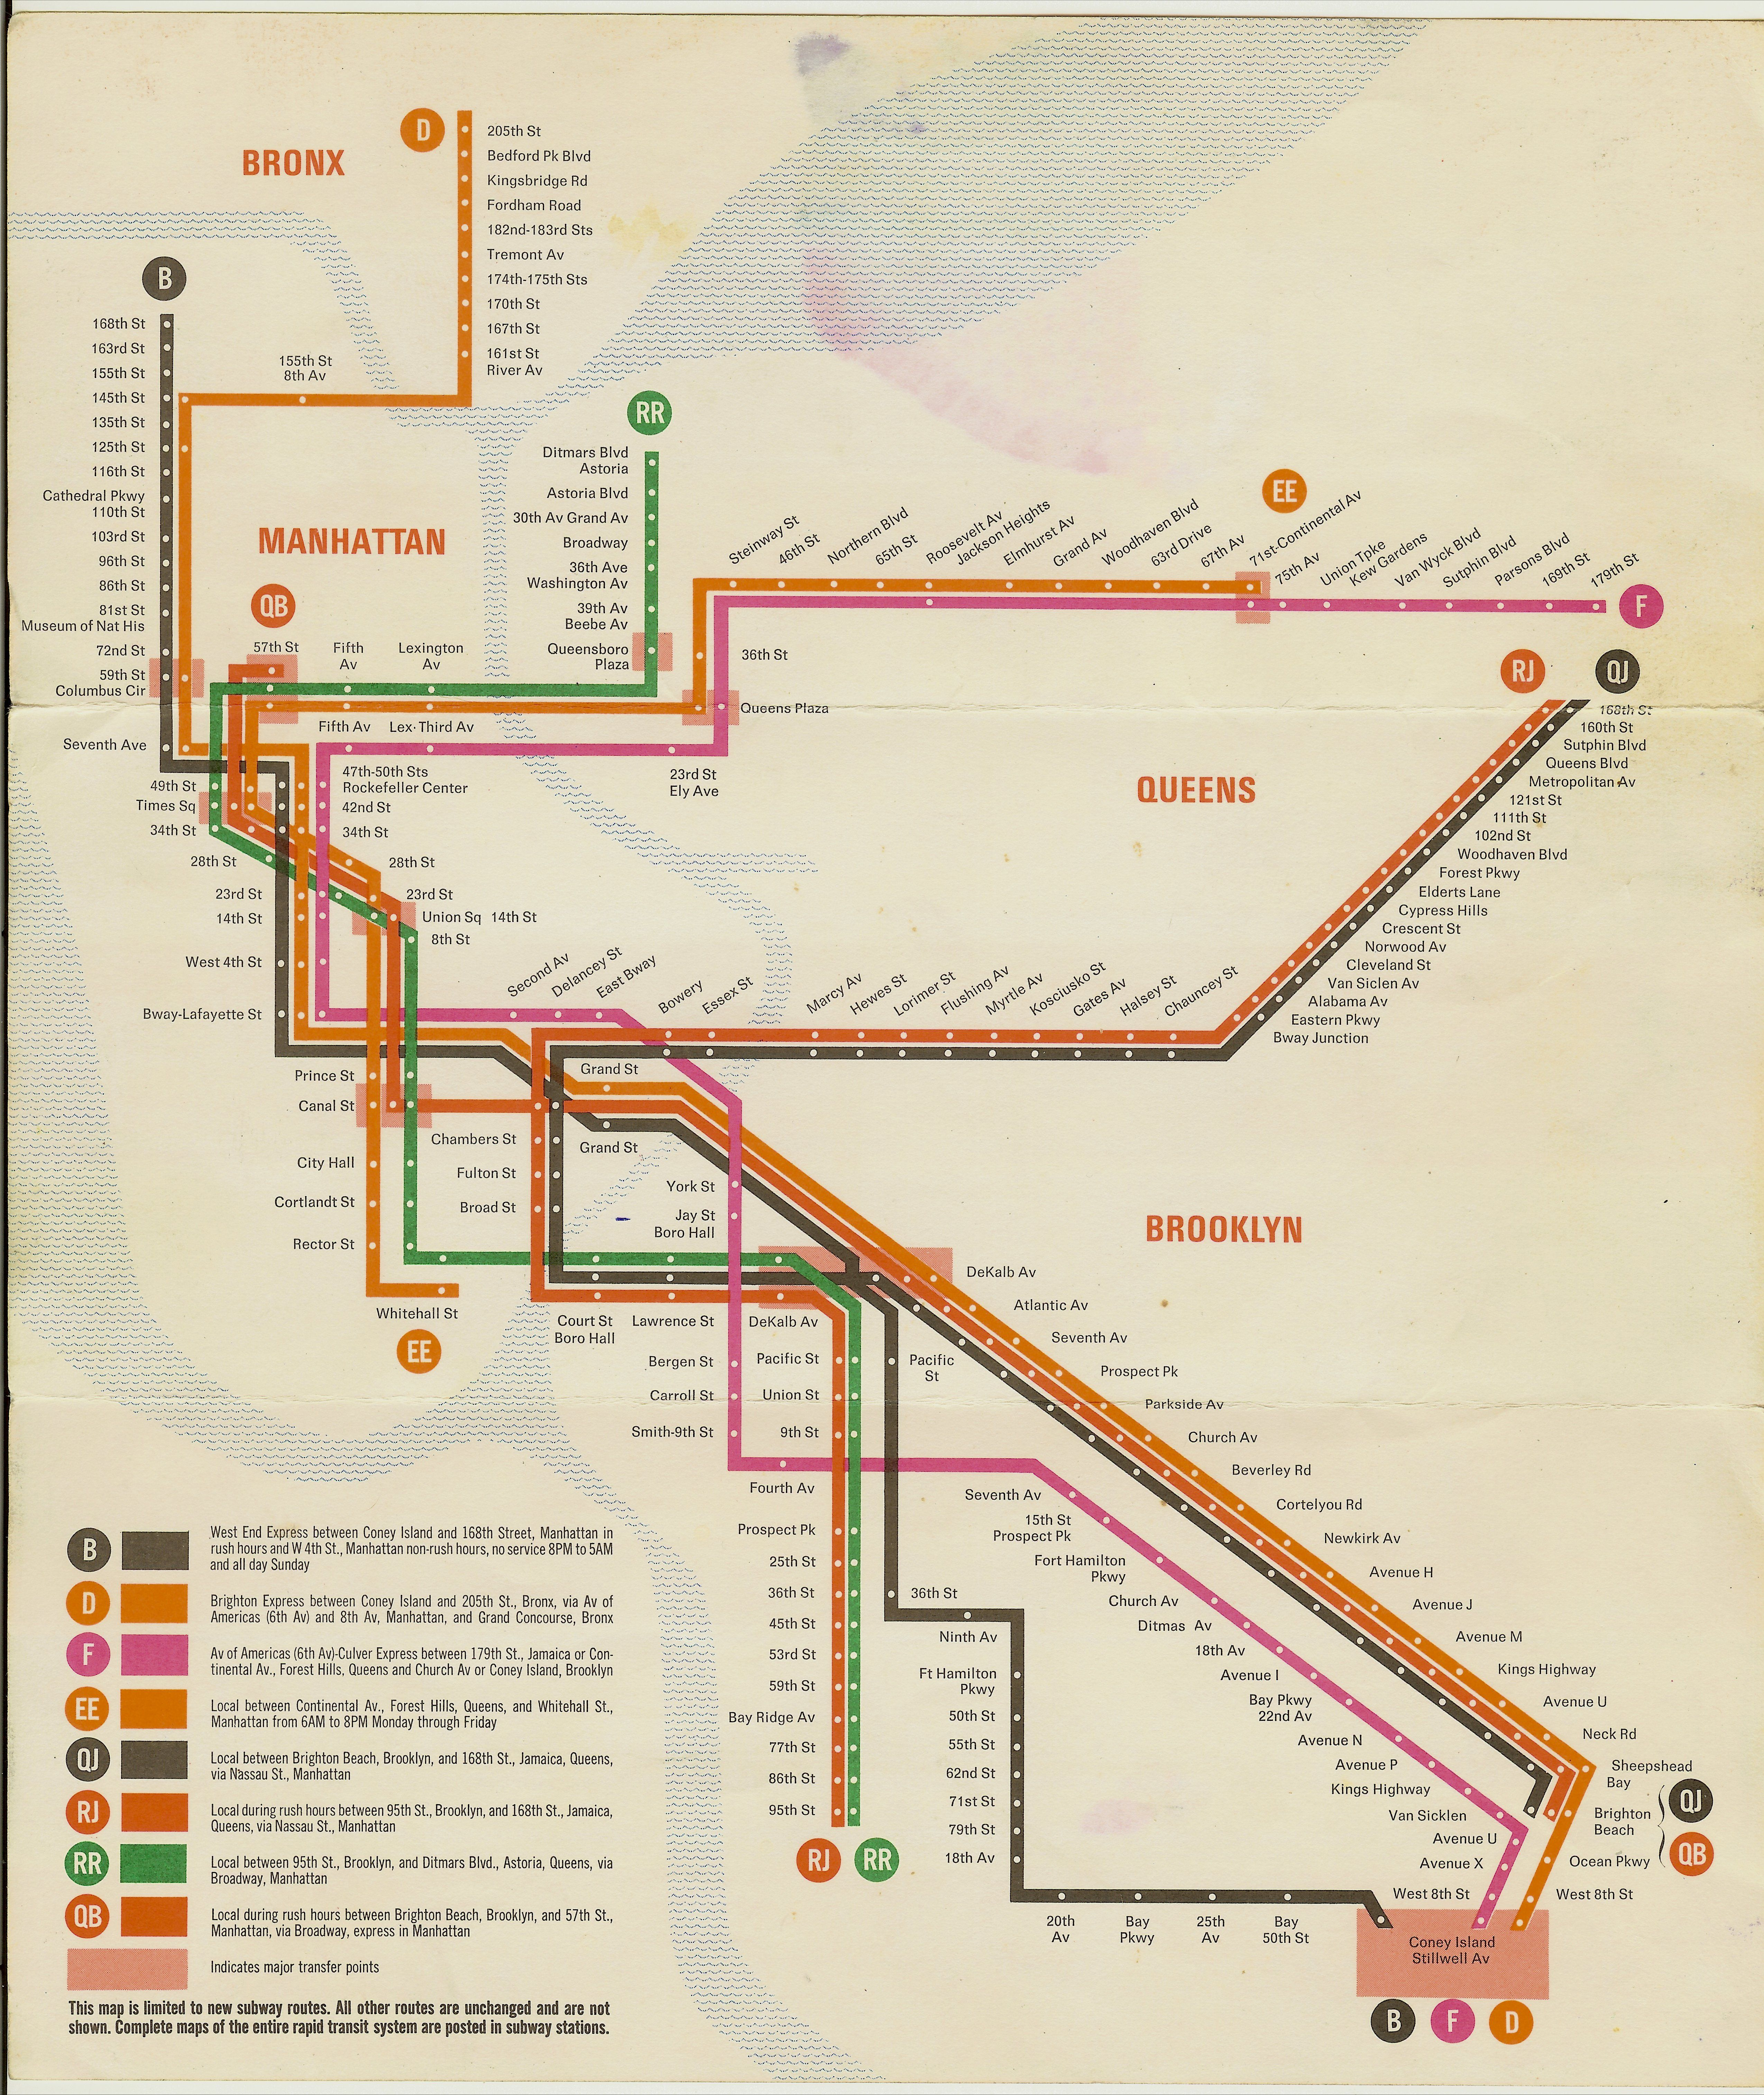 New York City Bus And Subway Map.Transitional New York City Transit Authority Subway Map 1967